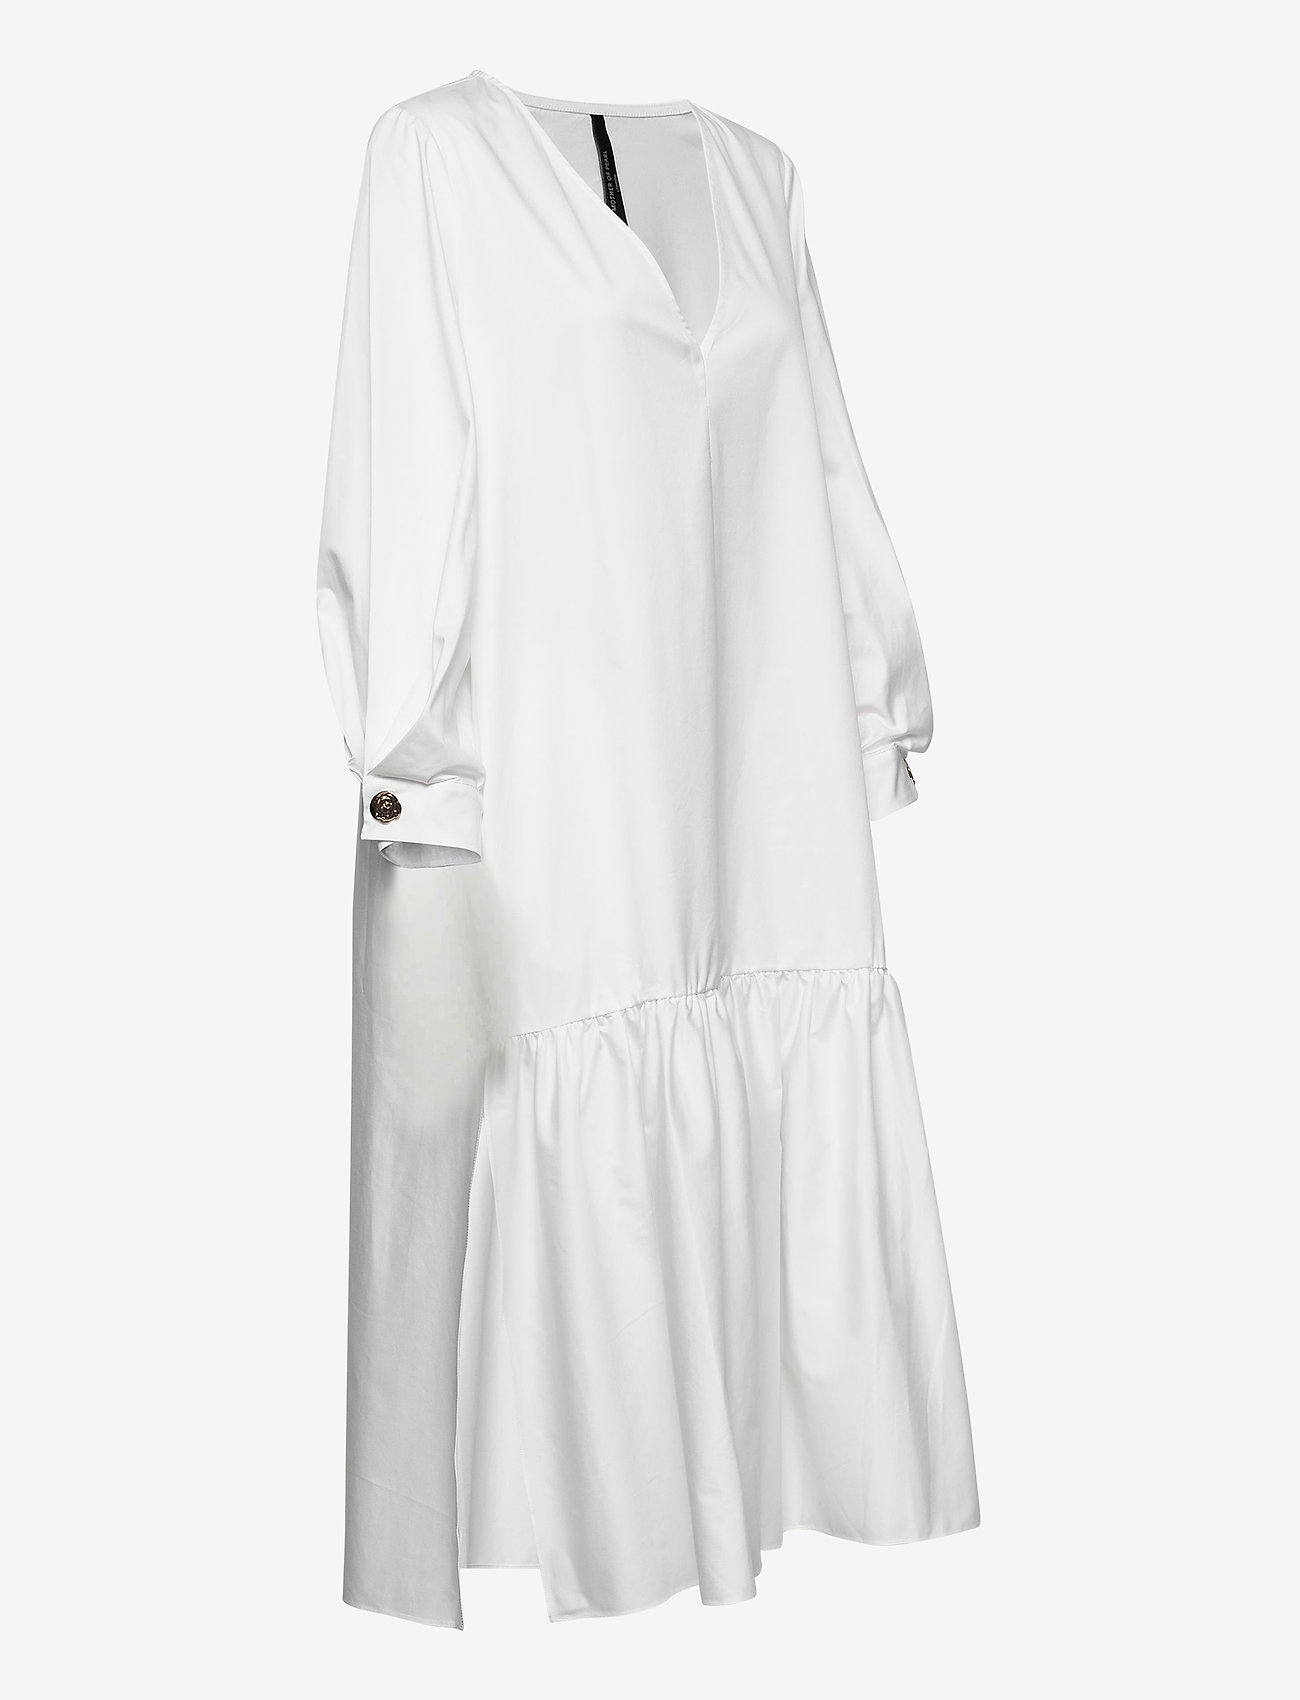 Mother of Pearl - DANICA WHITE DRESS - evening dresses - white - 2